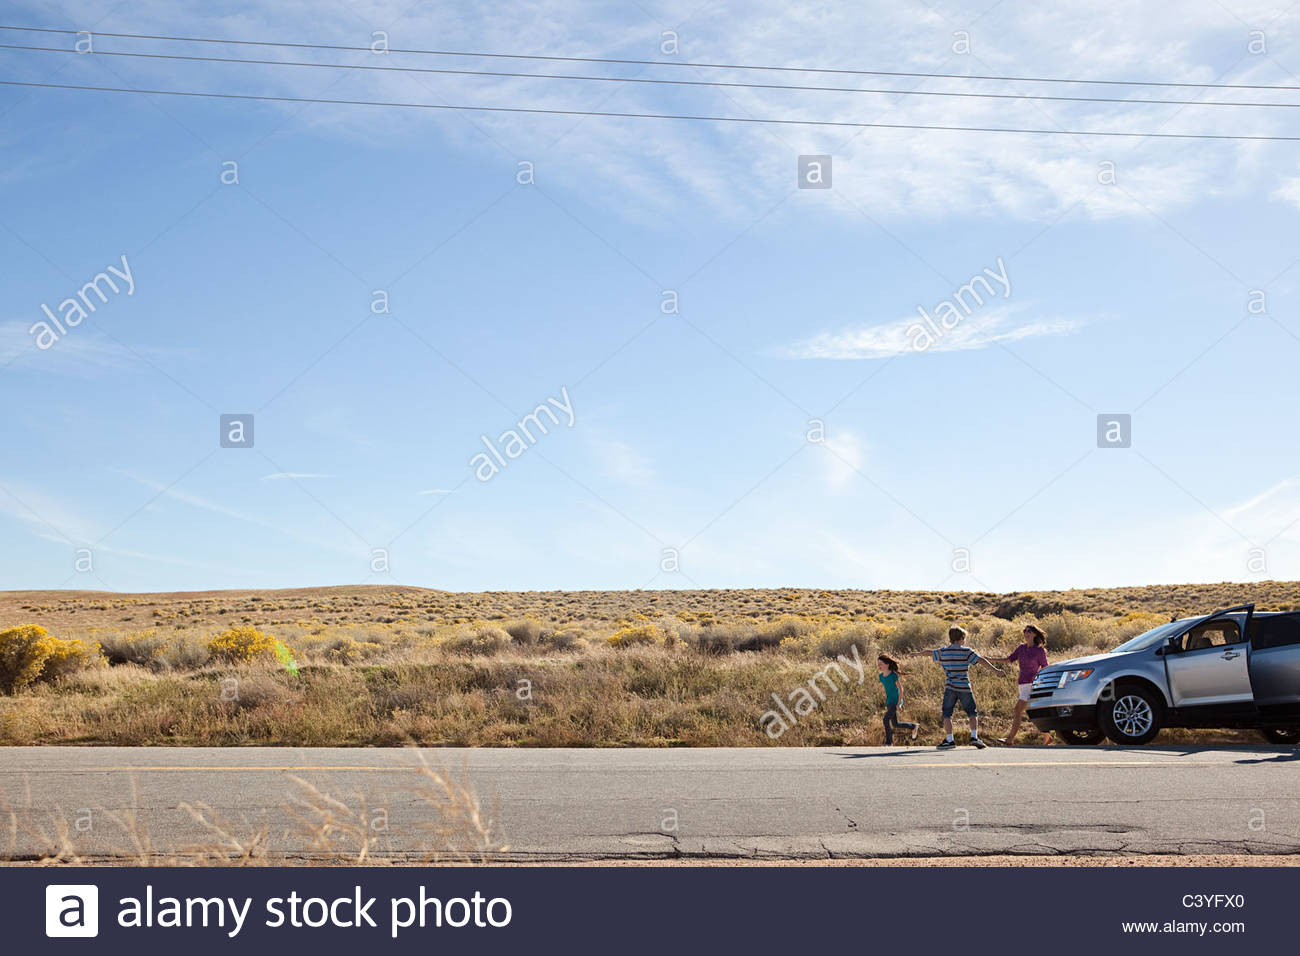 Three children by parked car in desert - Stock Image